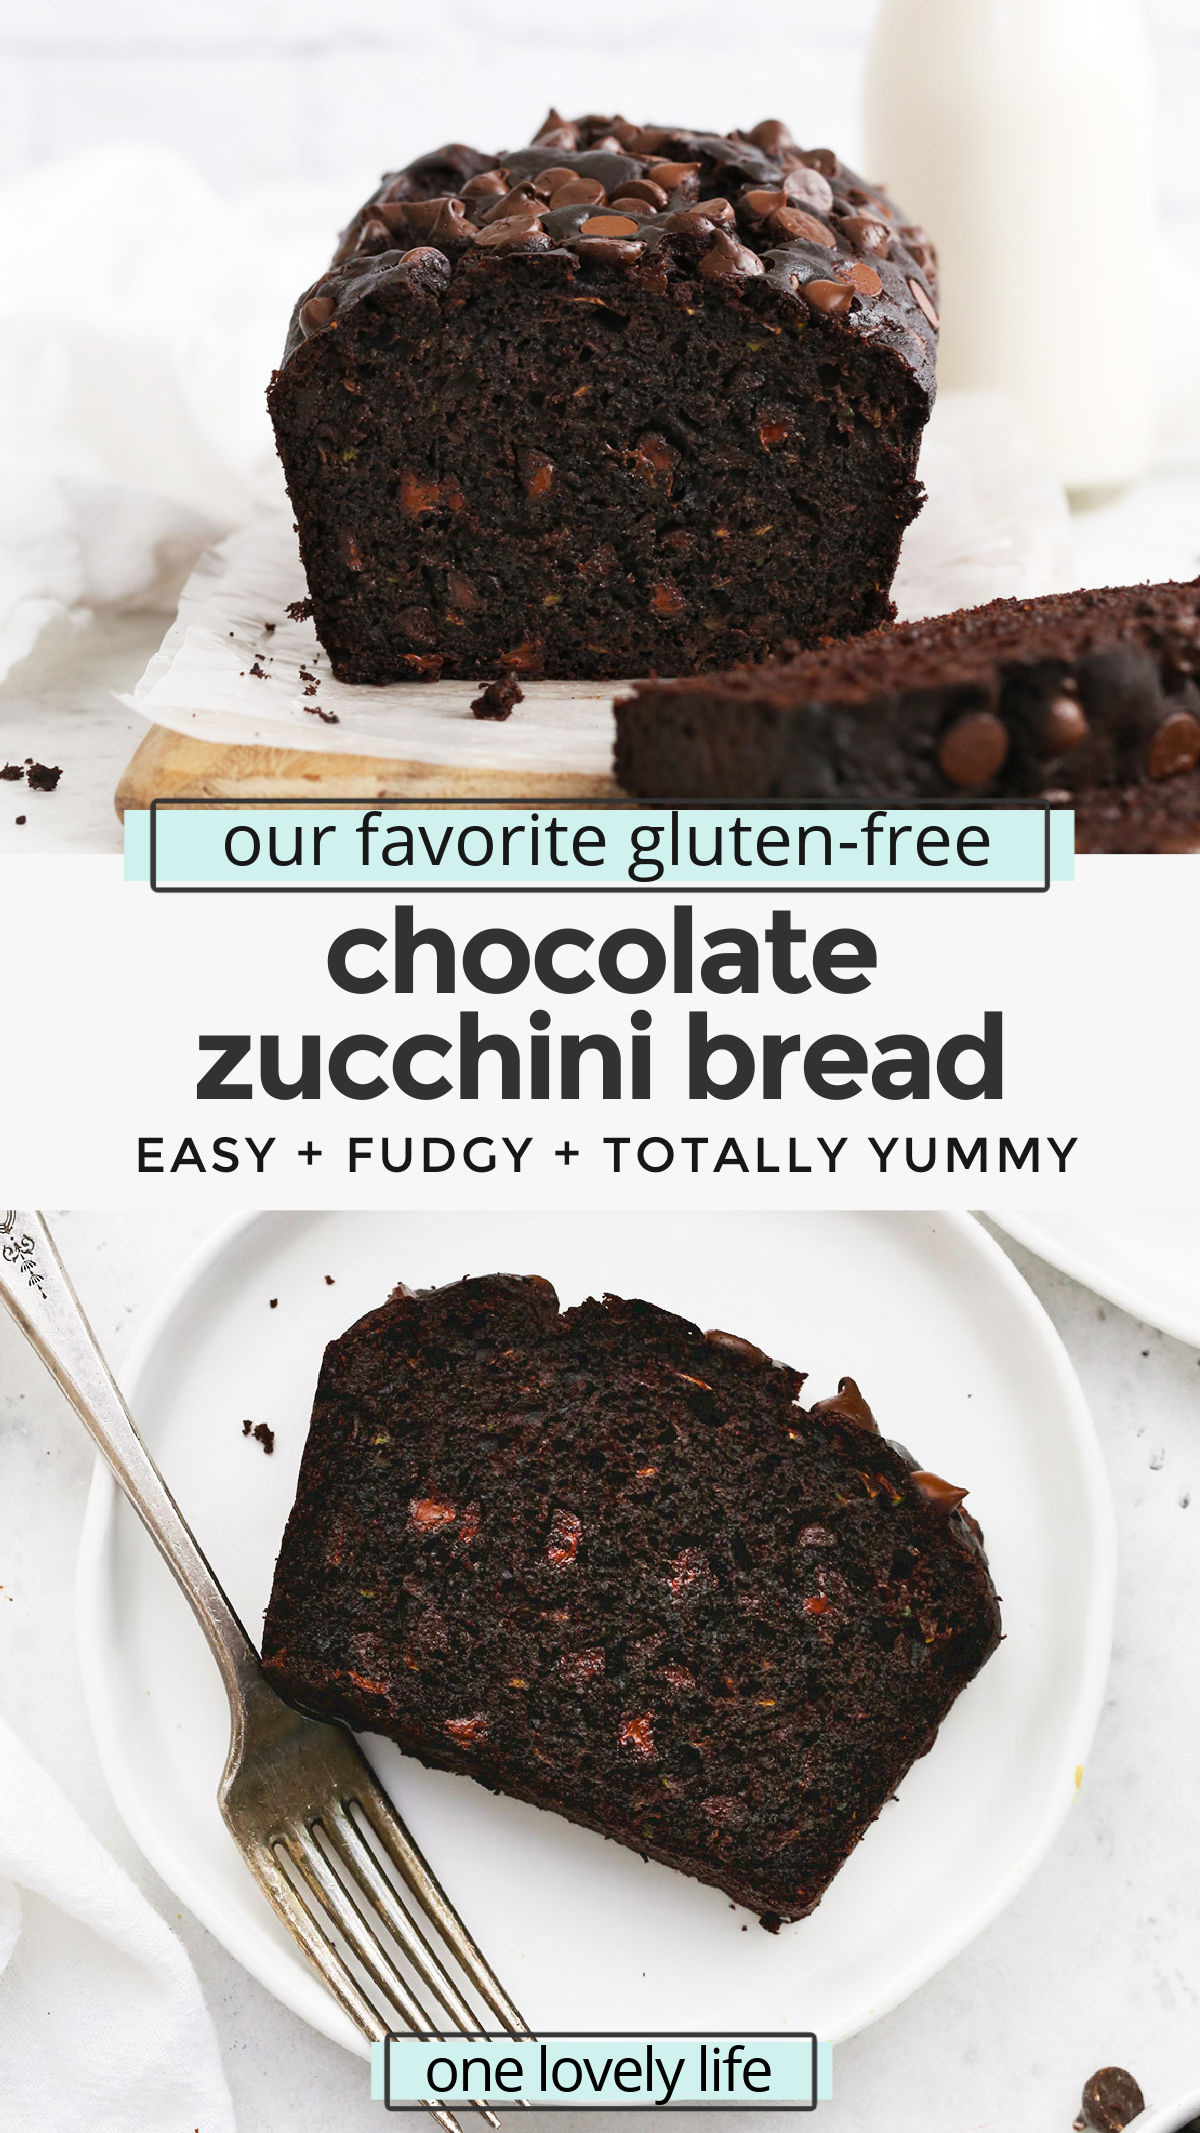 Gluten-Free Chocolate Zucchini Bread - This ultra chocolatey gluten-free zucchini bread is AMAZING. The perfect way to use up extra zucchini in the summer! (Gluten-Free, Dairy-Free) // Gluten Free Zucchini Bread Recipe // Chocolate Chip Zucchini Bread Recipe // Gluten Free Baking #glutenfree #chocolate #zucchini #zucchinibread